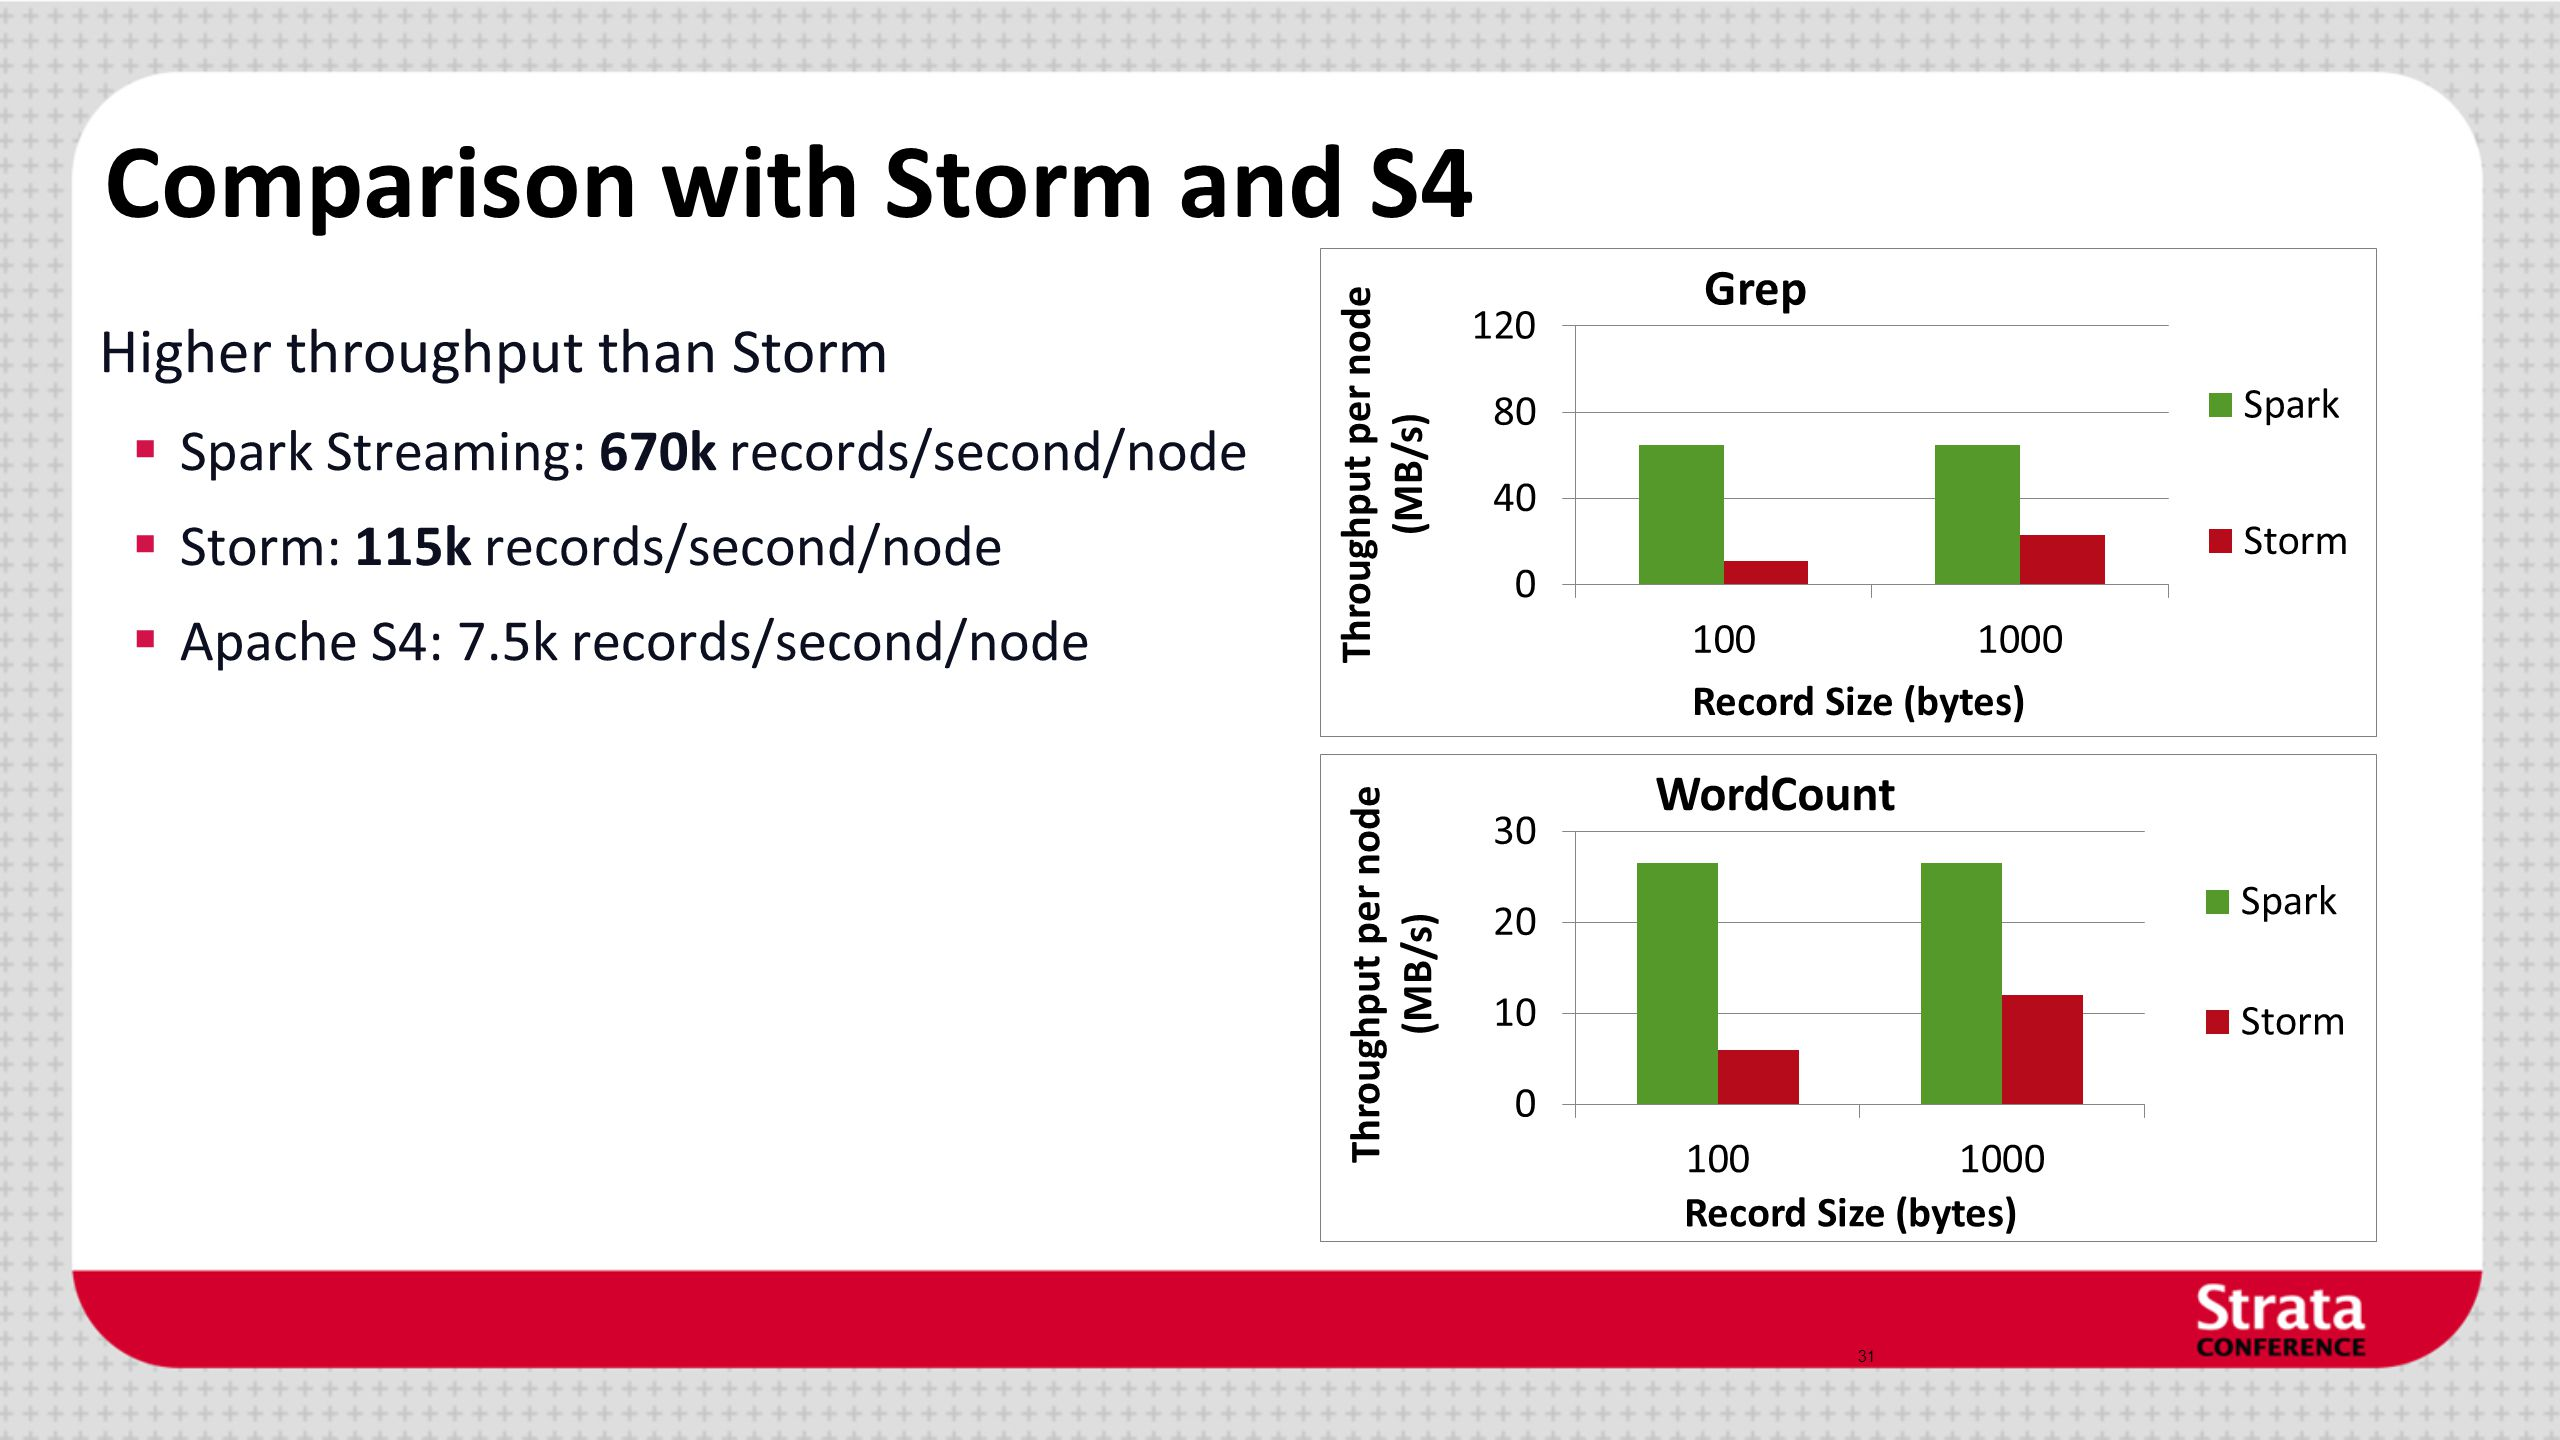 Comparison with Storm and S4 Higher throughput than Storm  Spark Streaming: 670k records/second/node  Storm: 115k records/second/node  Apache S4: 7.5k records/second/node 31